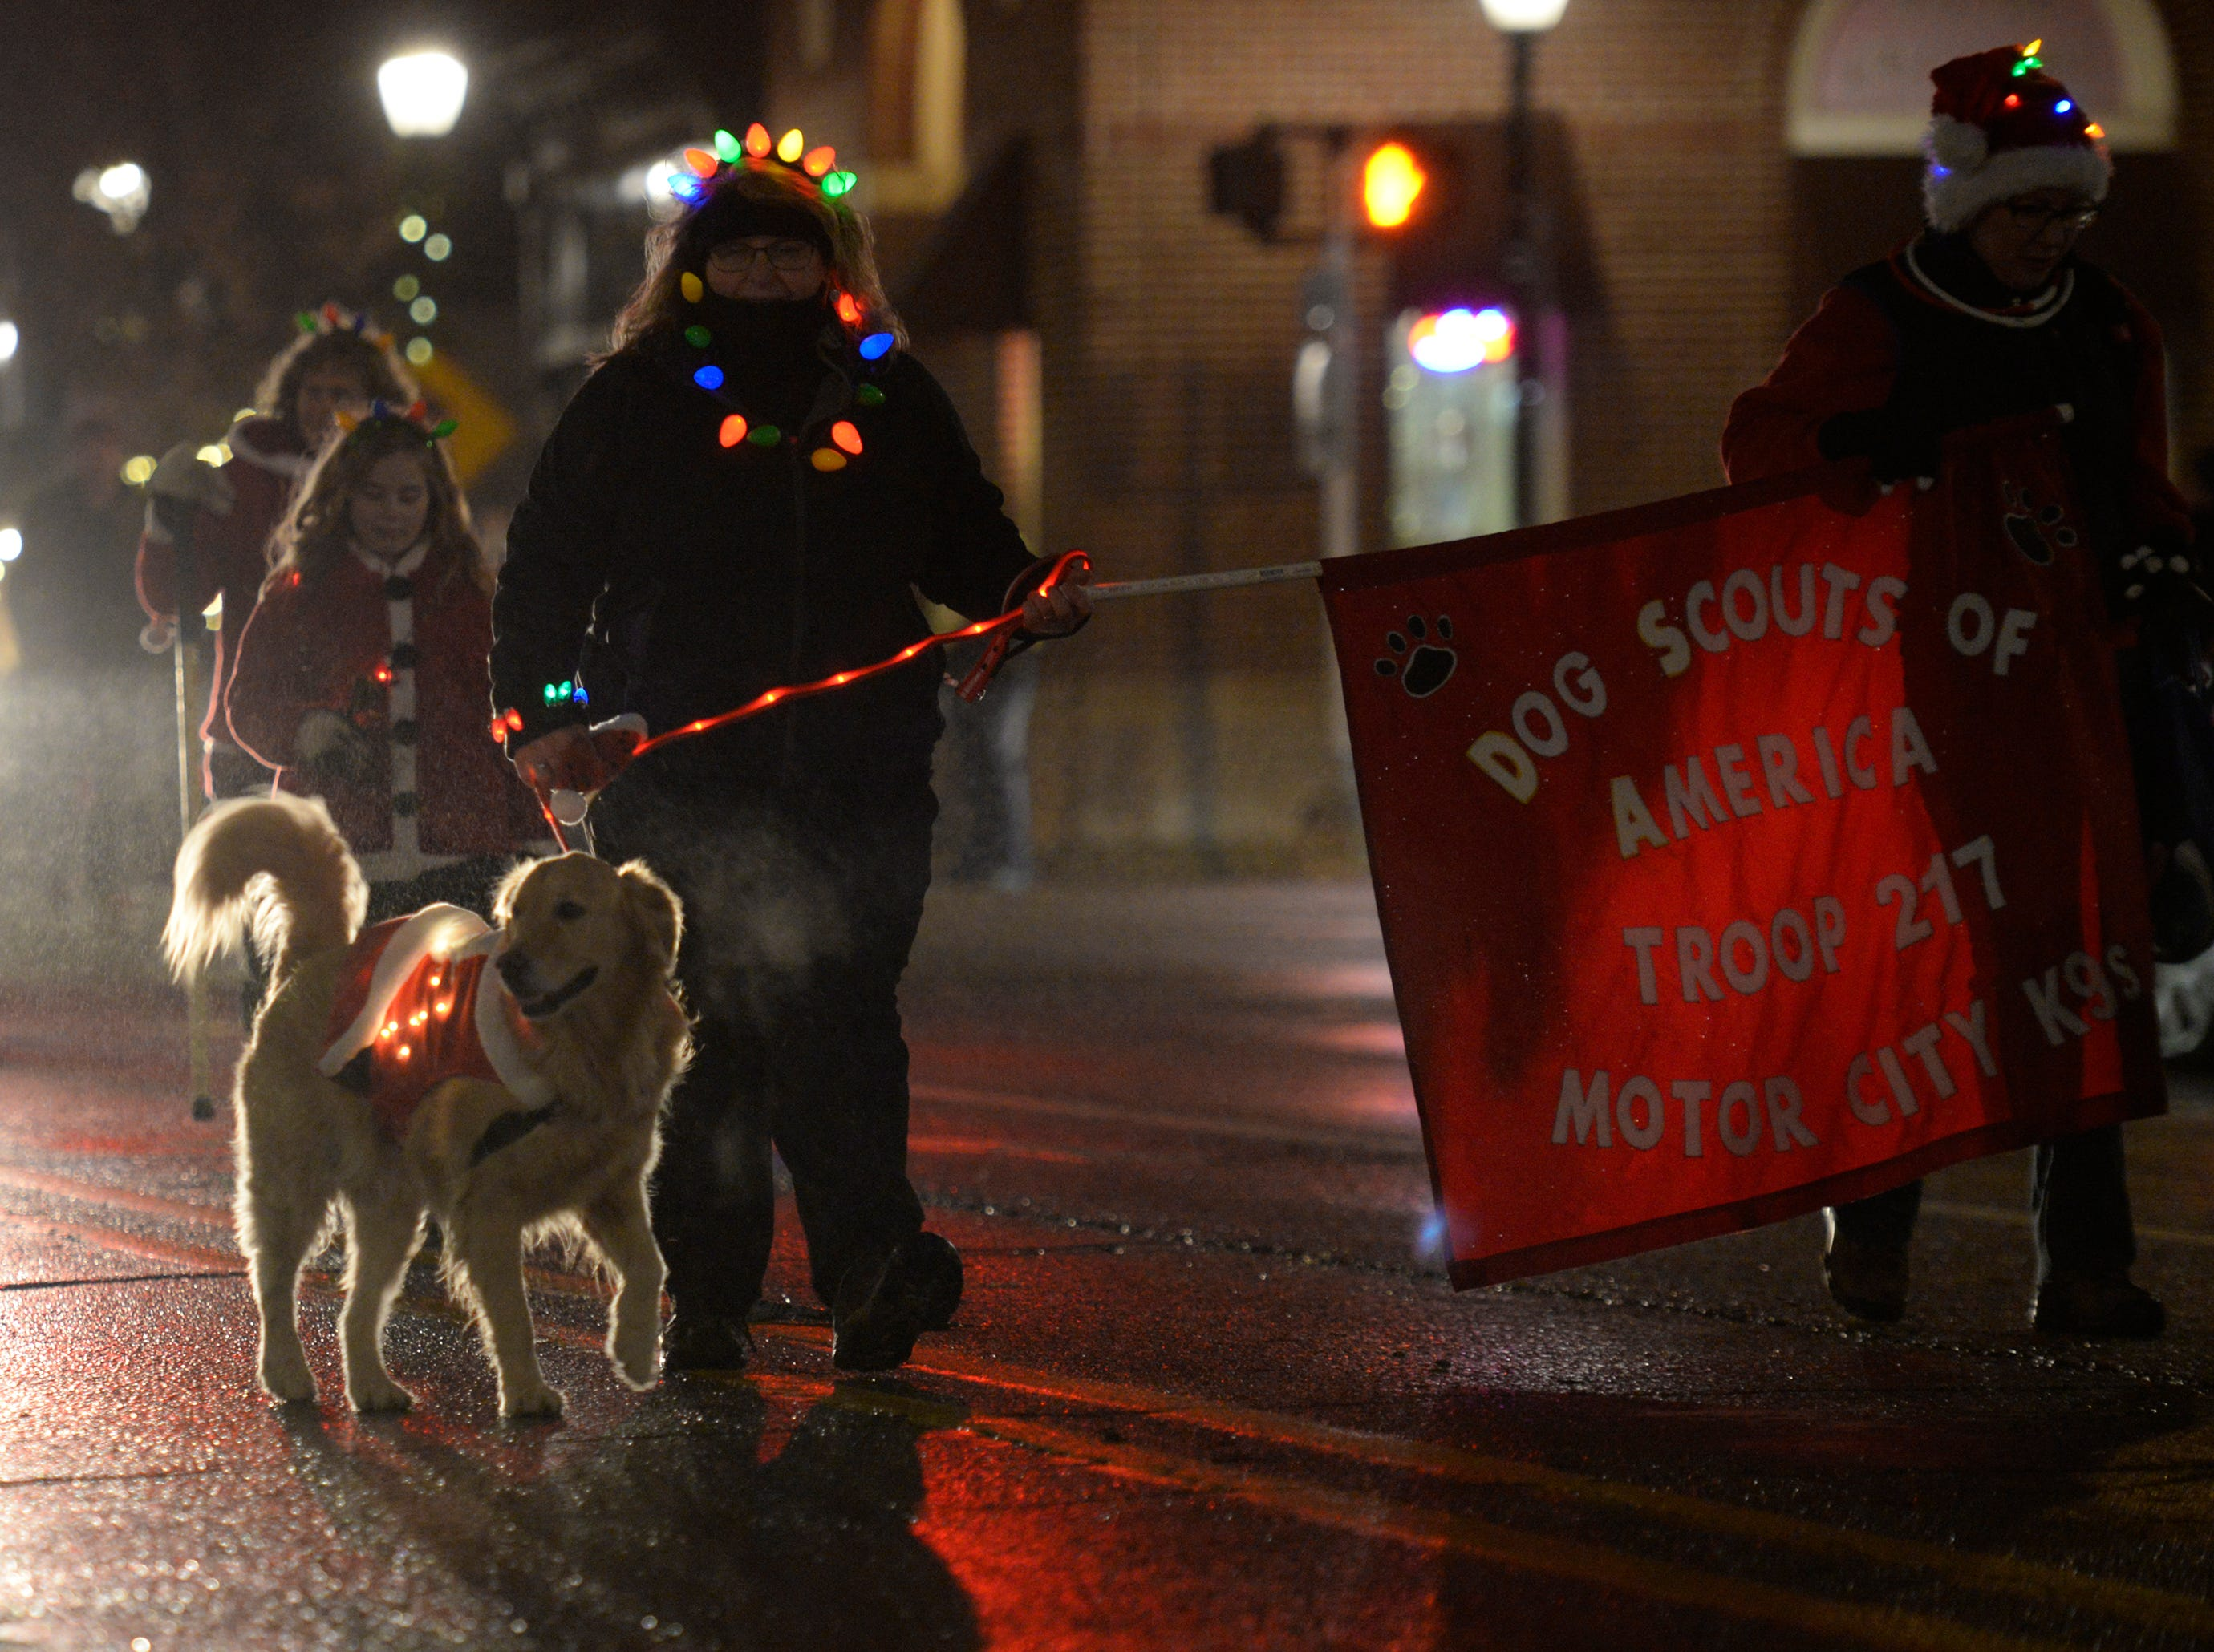 Dog Scouts of America in the Lighted Parade as part of the Cool Yule celebration Dec. 1, 2018.